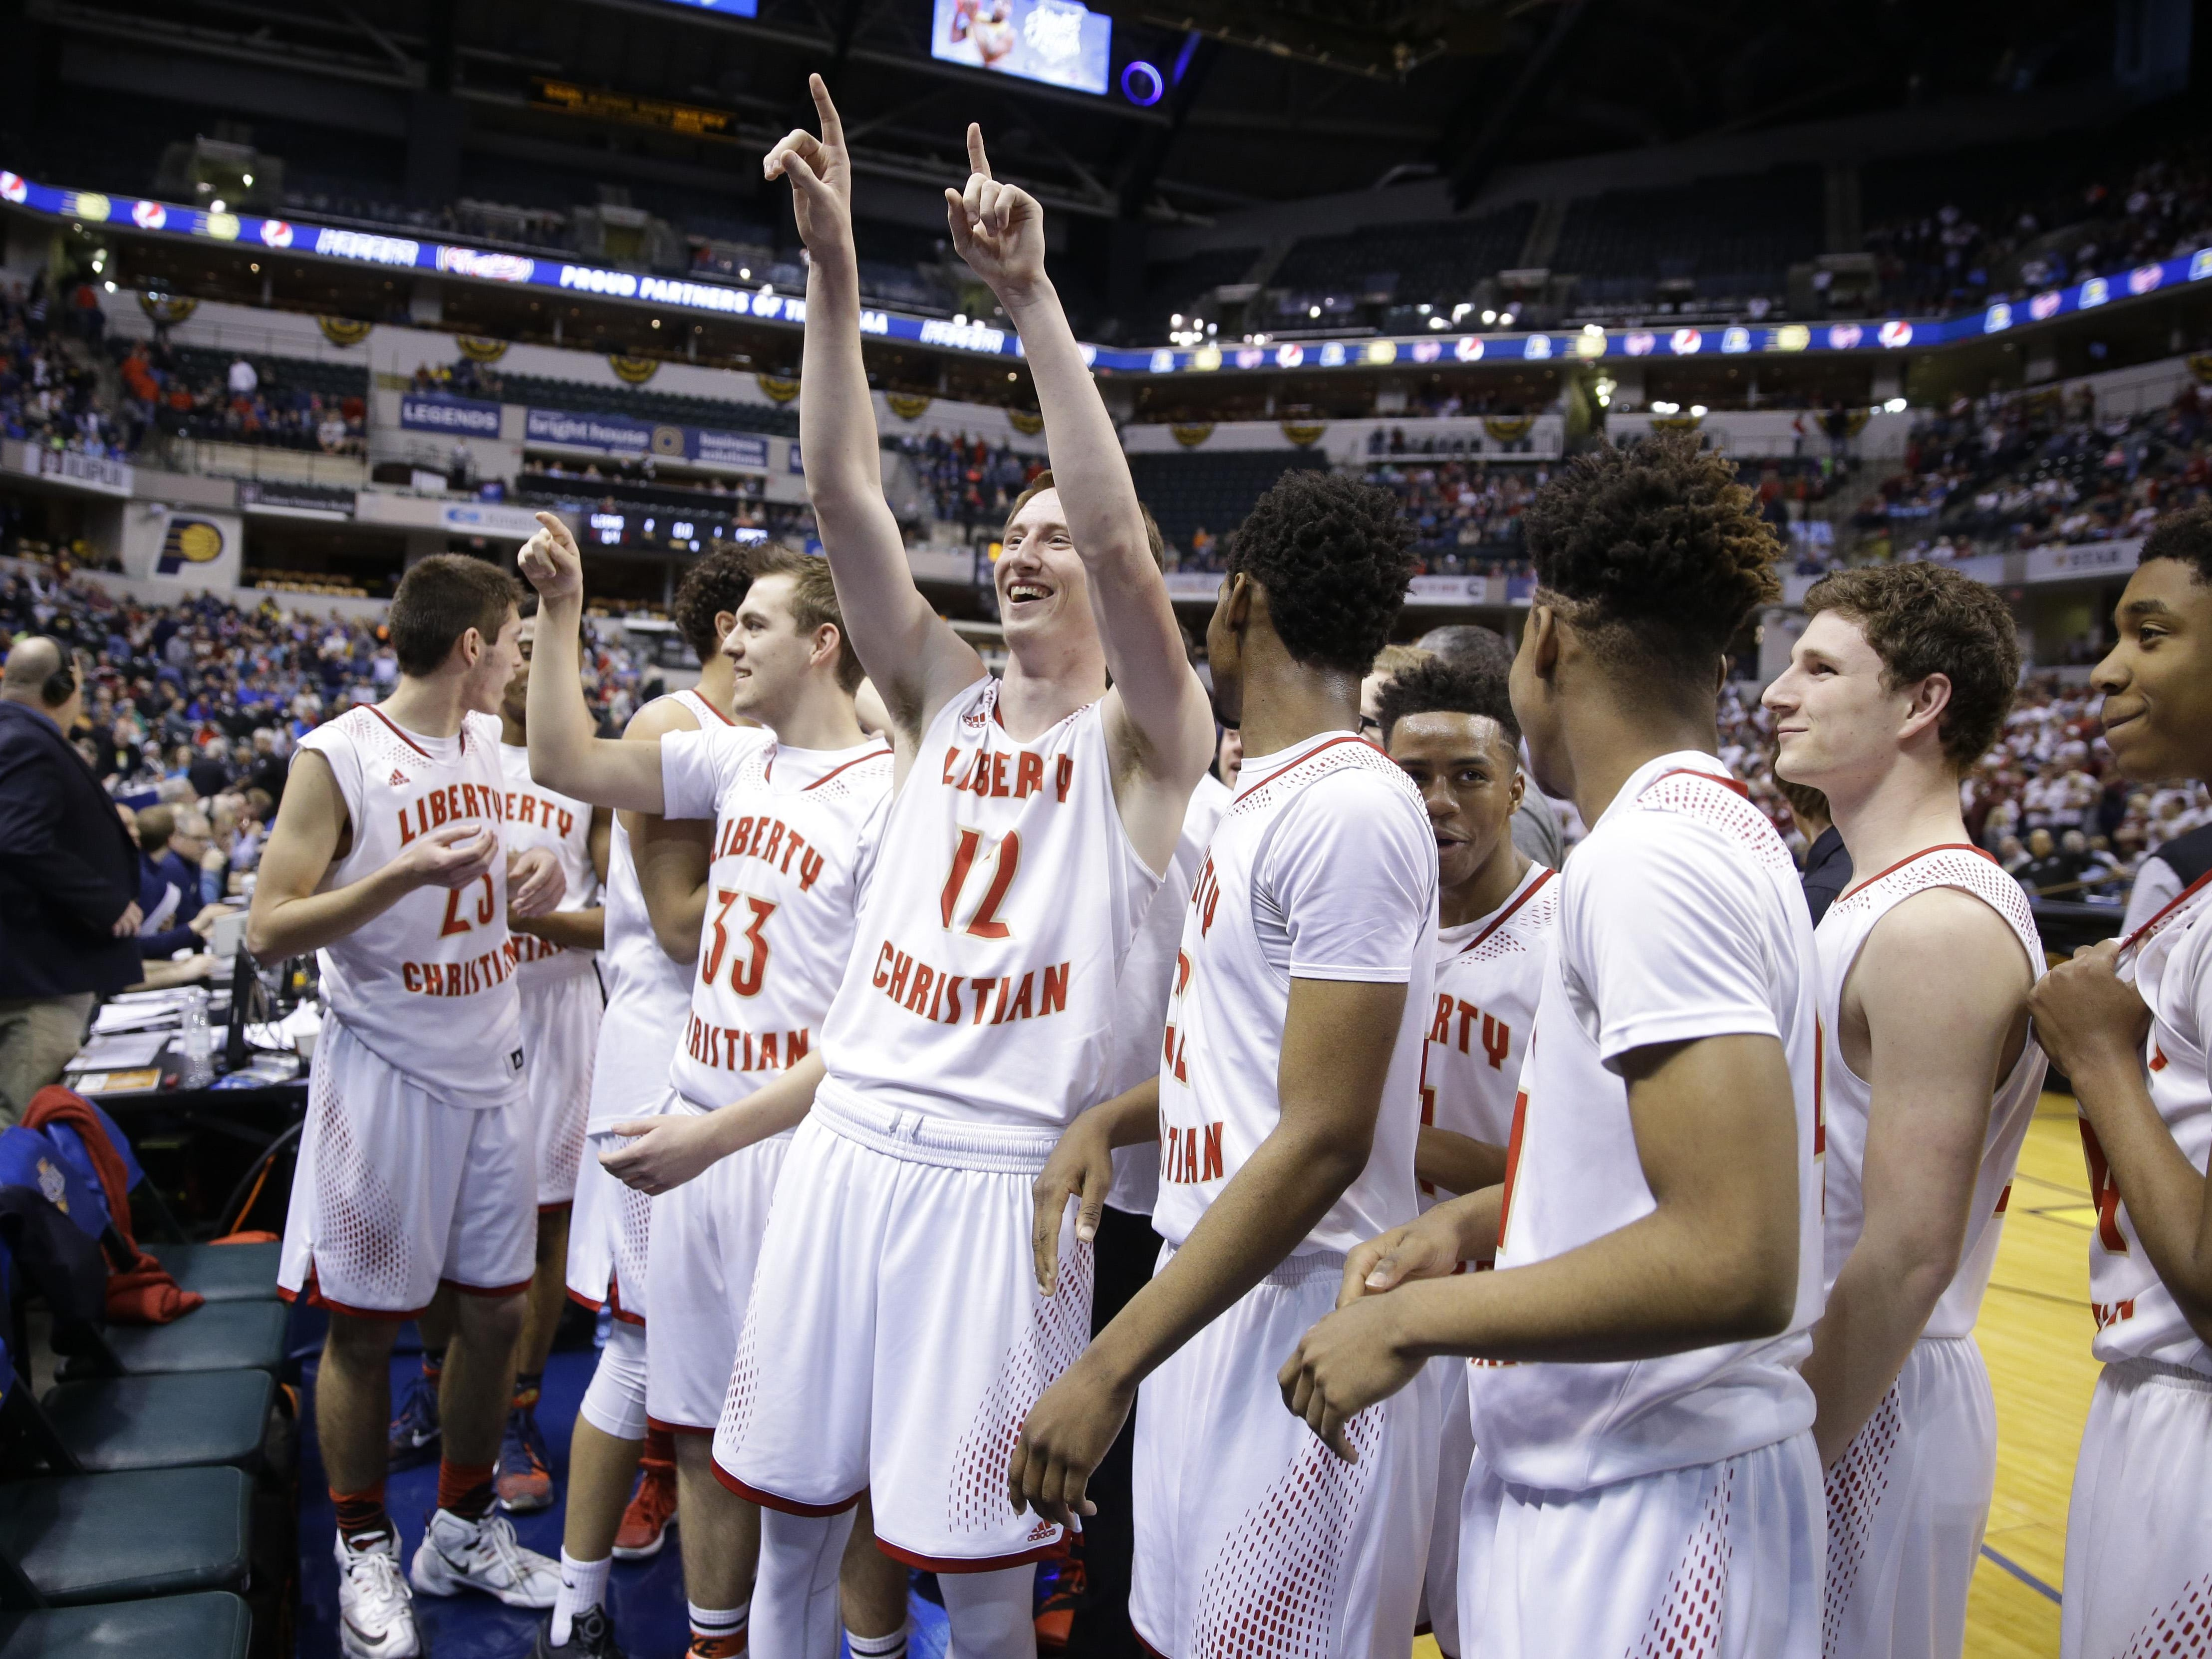 Liberty Christian players, including Caleb Hardy (12) celebrate after winning the Class A state championship basketball game over Bloomfield at Bankers Life Fieldhouse, Saturday.